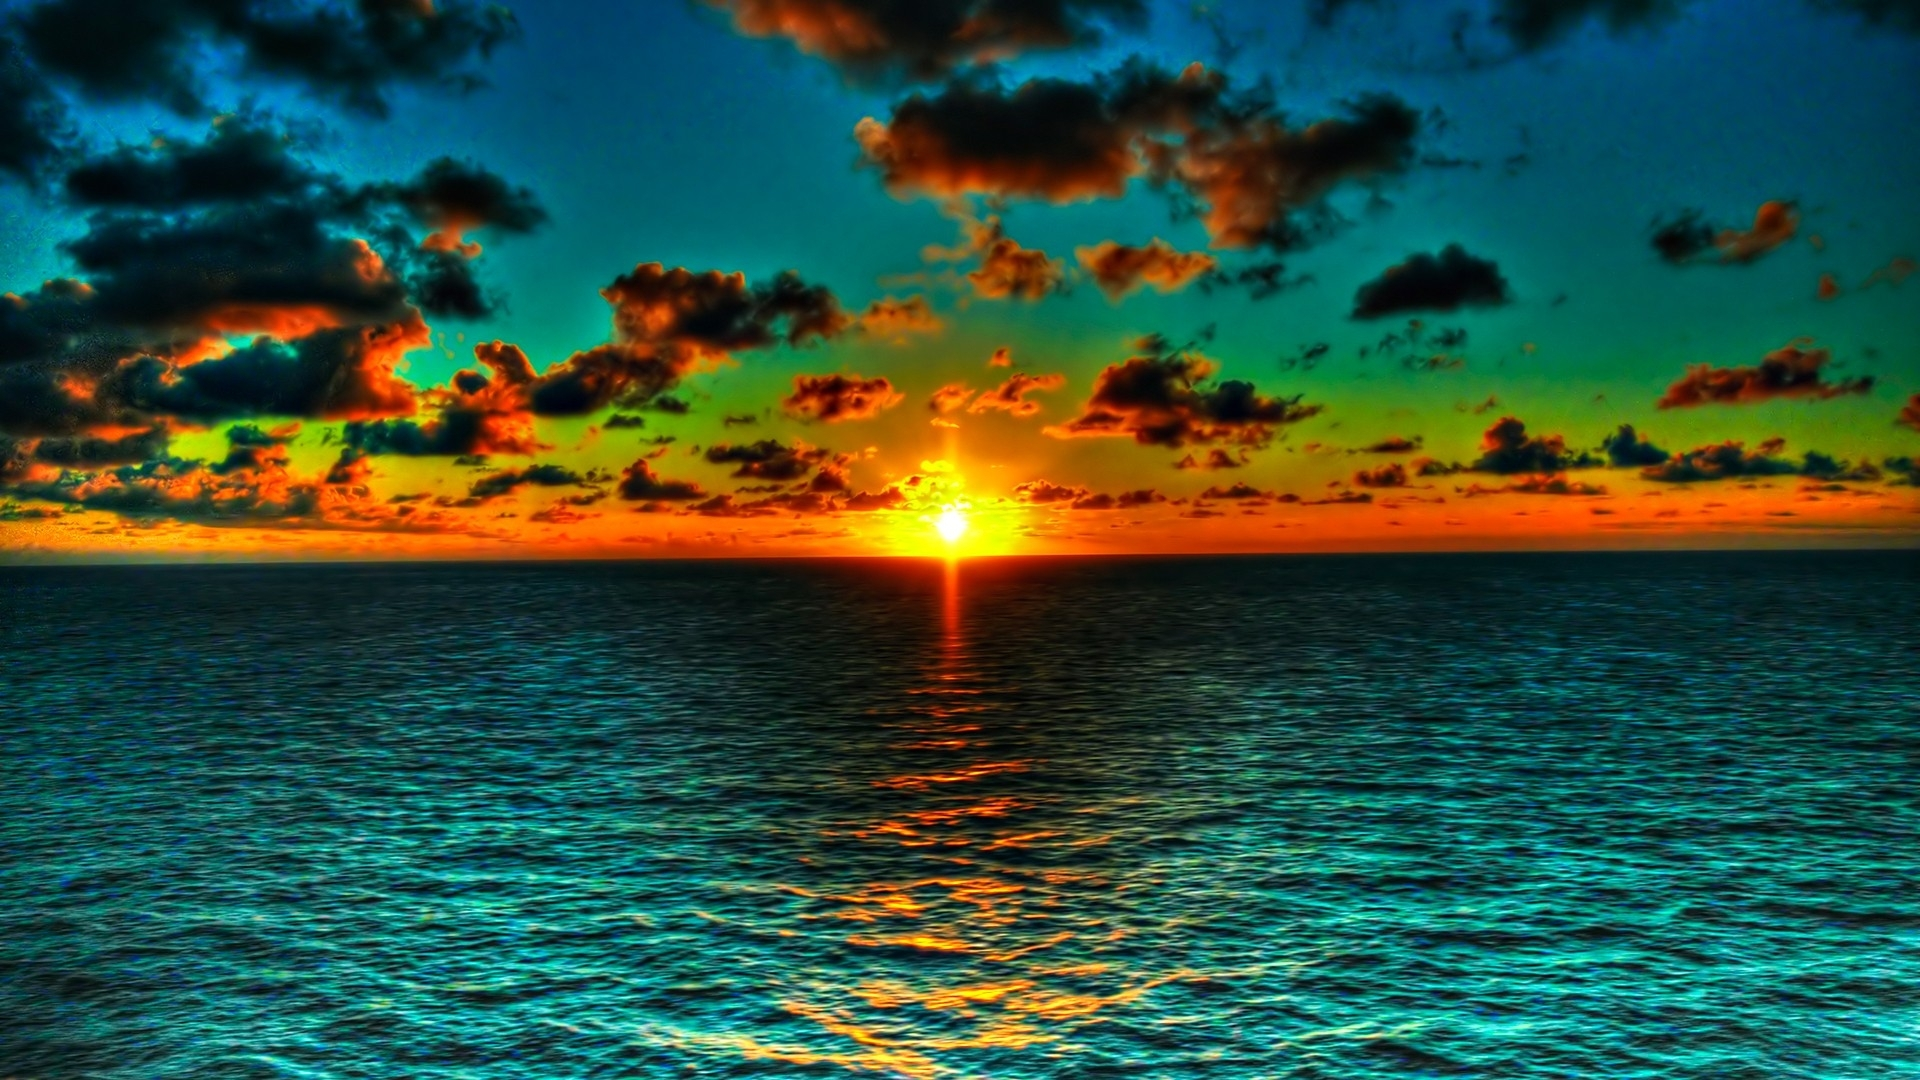 Beautiful Ocean Sunset Wallpaper